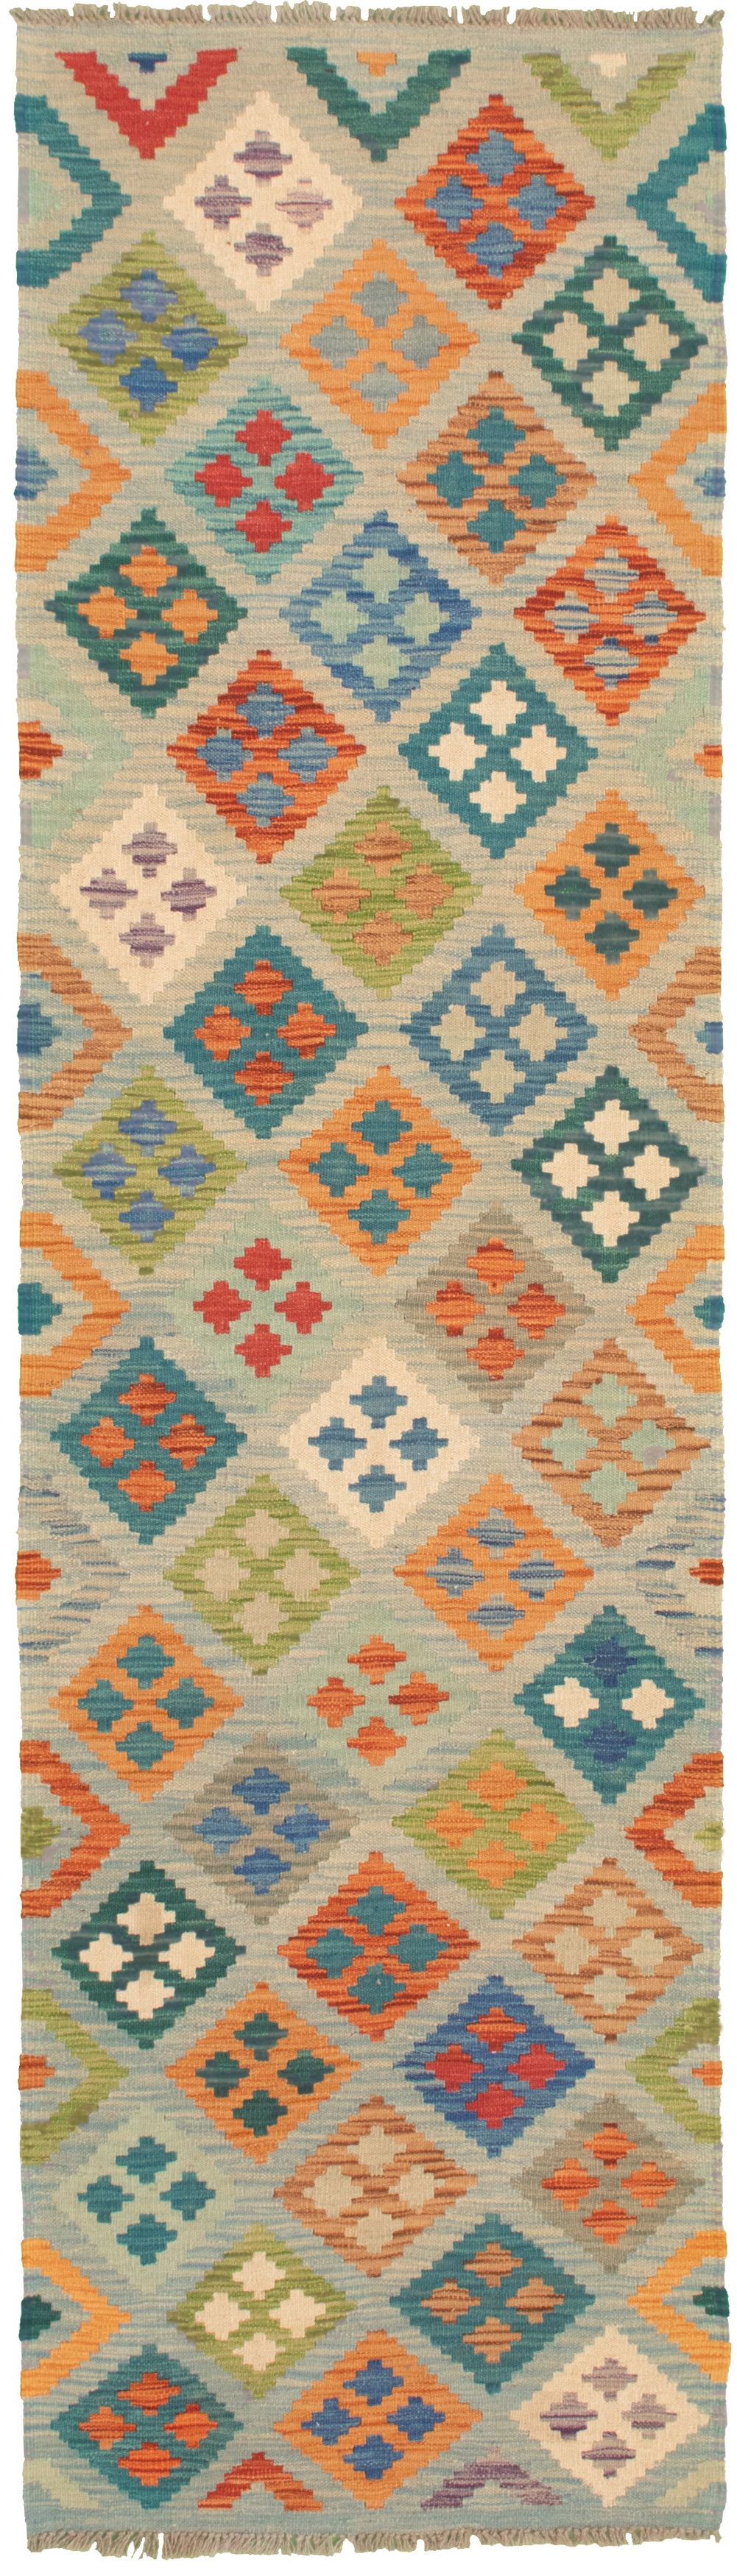 """Hand woven Bold and Colorful  Cream, Light Blue  Wool Kilim 2'6"""" x 9'9"""" Size: 2'6"""" x 9'9"""""""